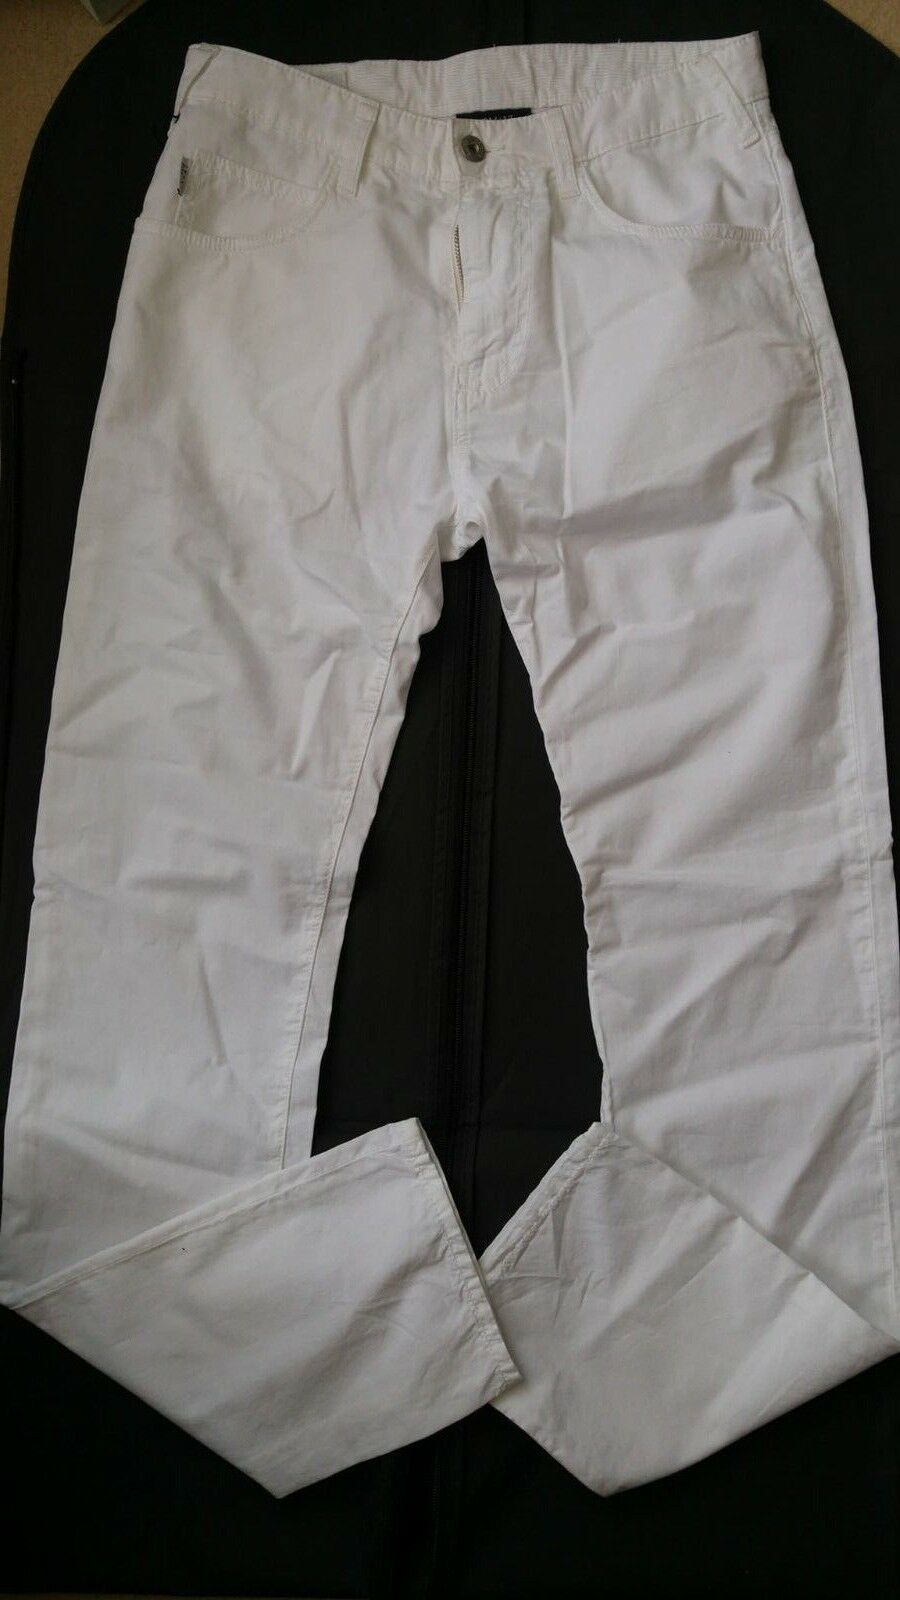 Armani Jeans J45 slim fit men's white jeans size W29xL34